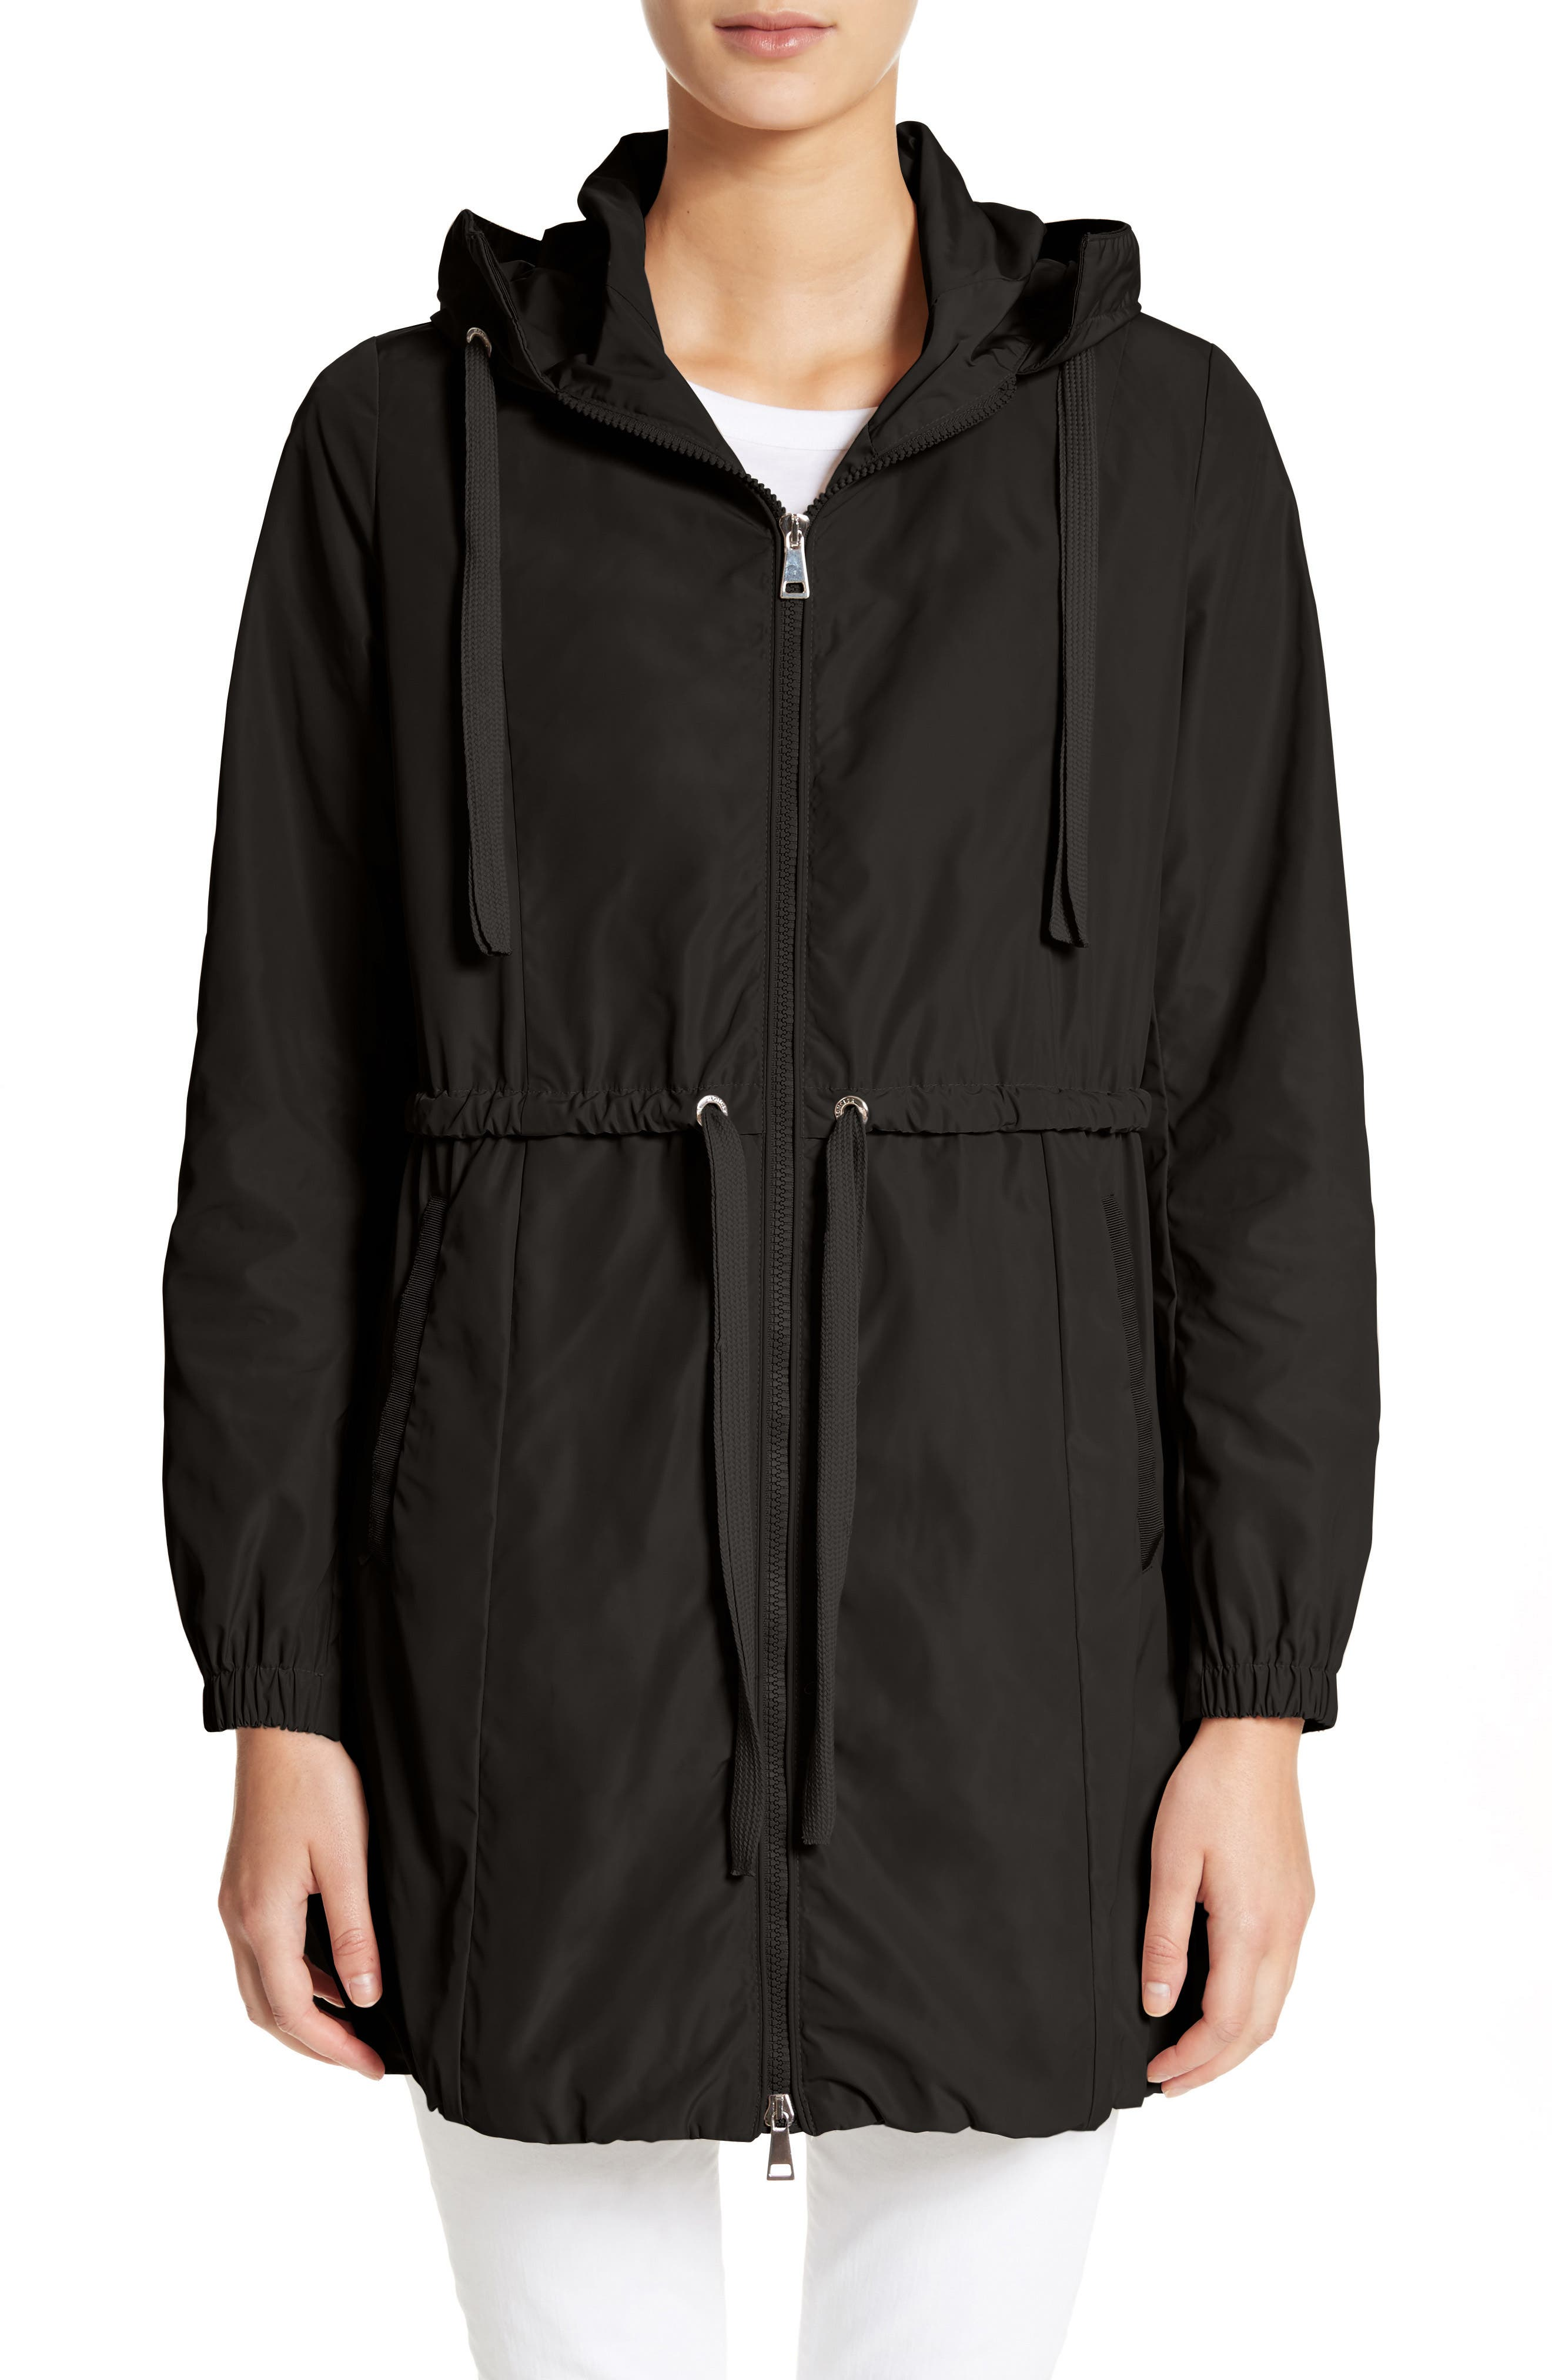 Topaze Water Resistant Hooded Jacket,                             Main thumbnail 1, color,                             BLACK